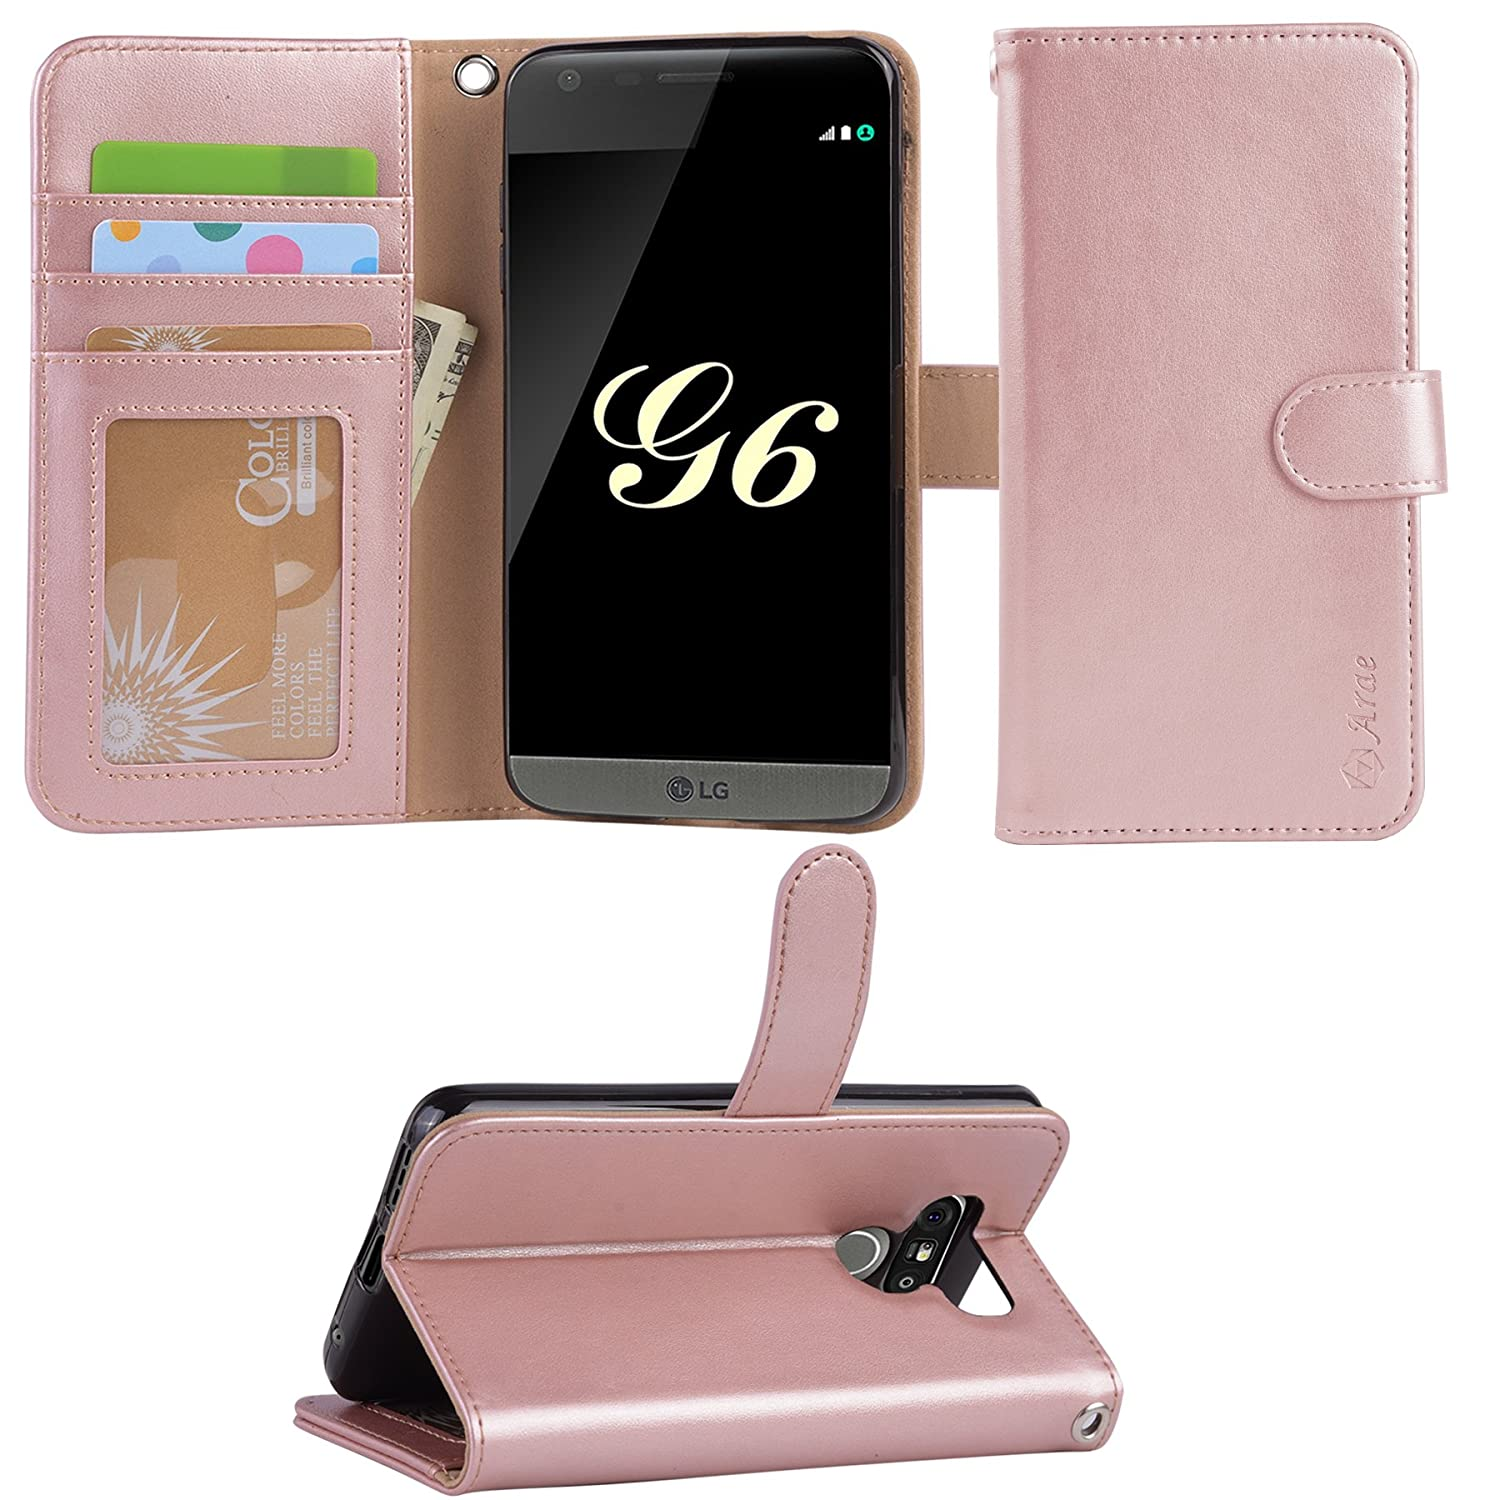 brand new 9da5b ddb48 Arae LG G6 case, LG G6 Wallet Case with Kickstand and Flip Cover, Rosegold